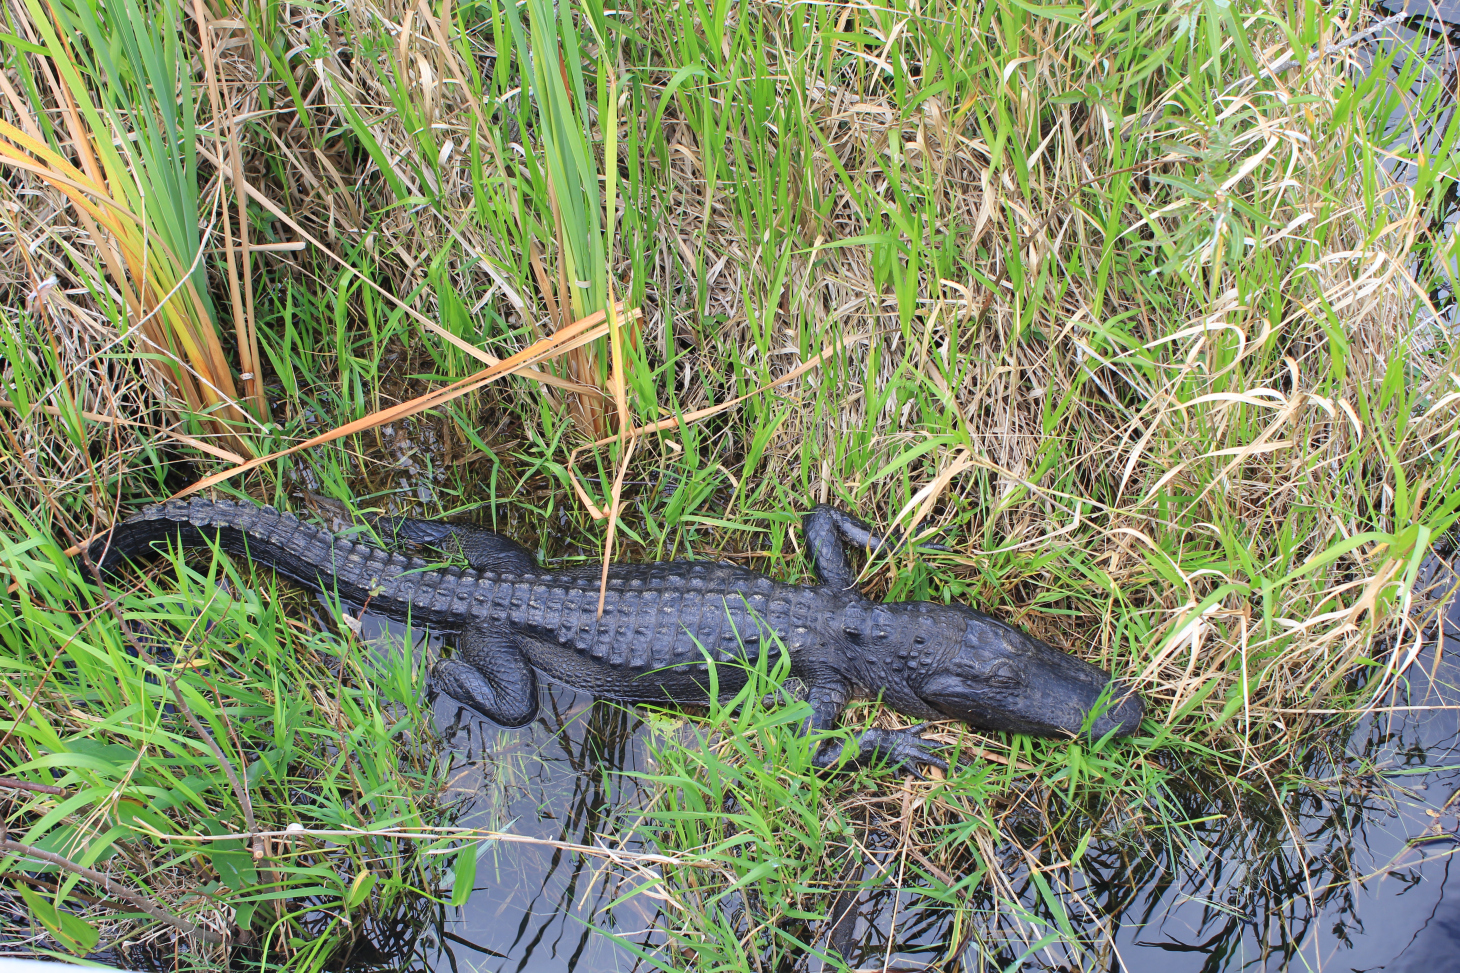 YOU DIDN'T THINK I WOULD DO A PIECE ON THE EVERGLADES AND NOT HAVE A PHOTO OF A GATOR DID YOU?  THIS WAS TAKEN MOMENTS BEFORE HE BIT OFF THE SECOND TOE OF MY LEFT FOOT.